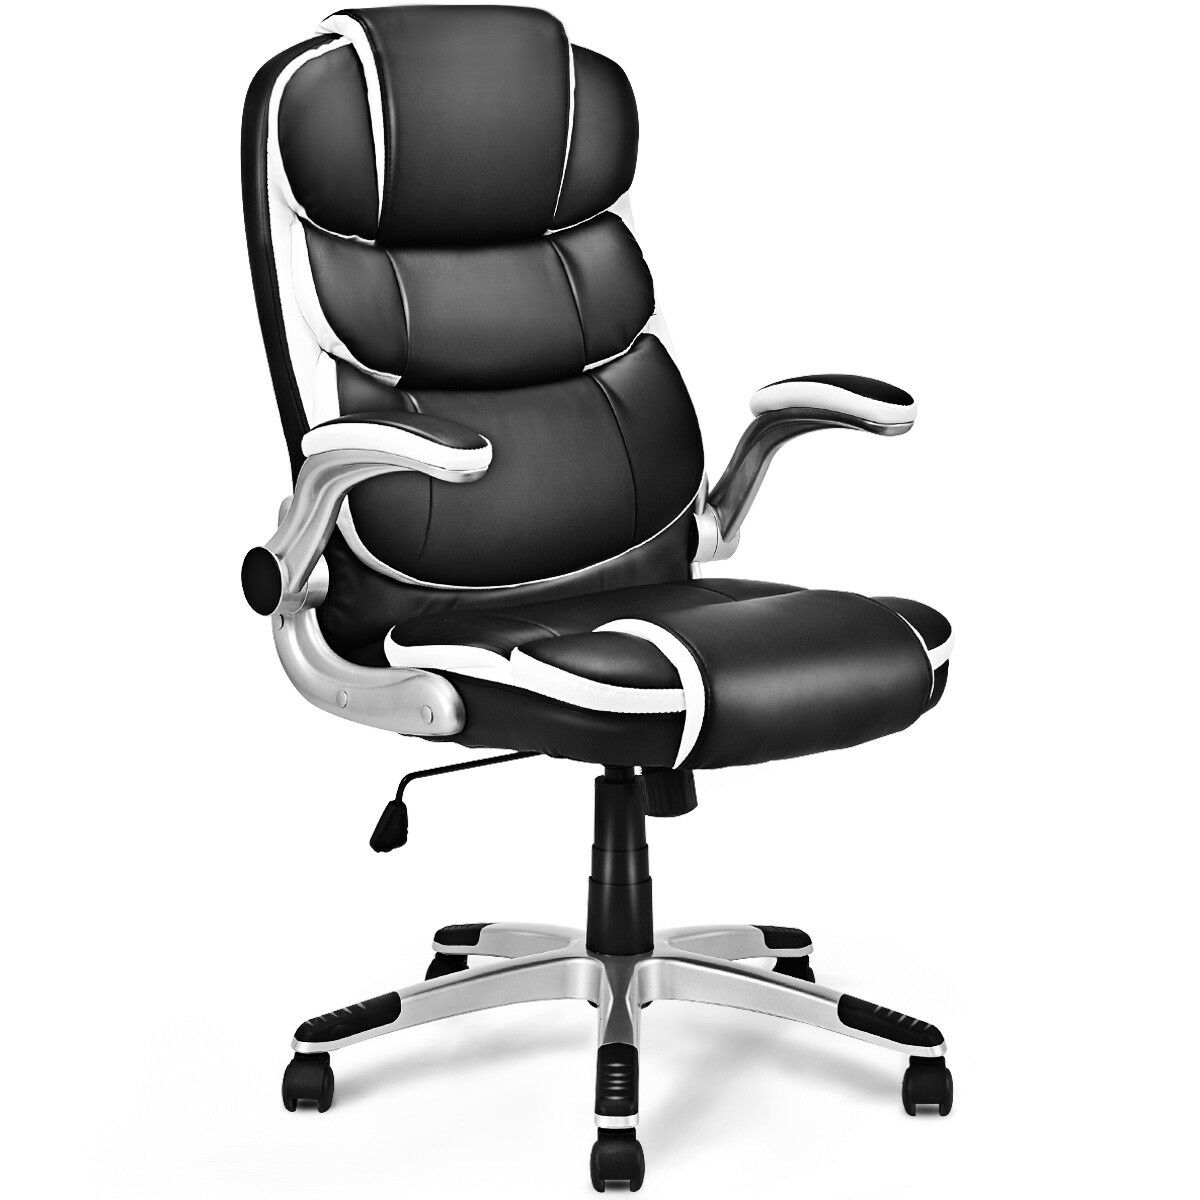 Costway PU Leather High Back Executive Office Chair Swivel Desk Task Computer Ergonomic